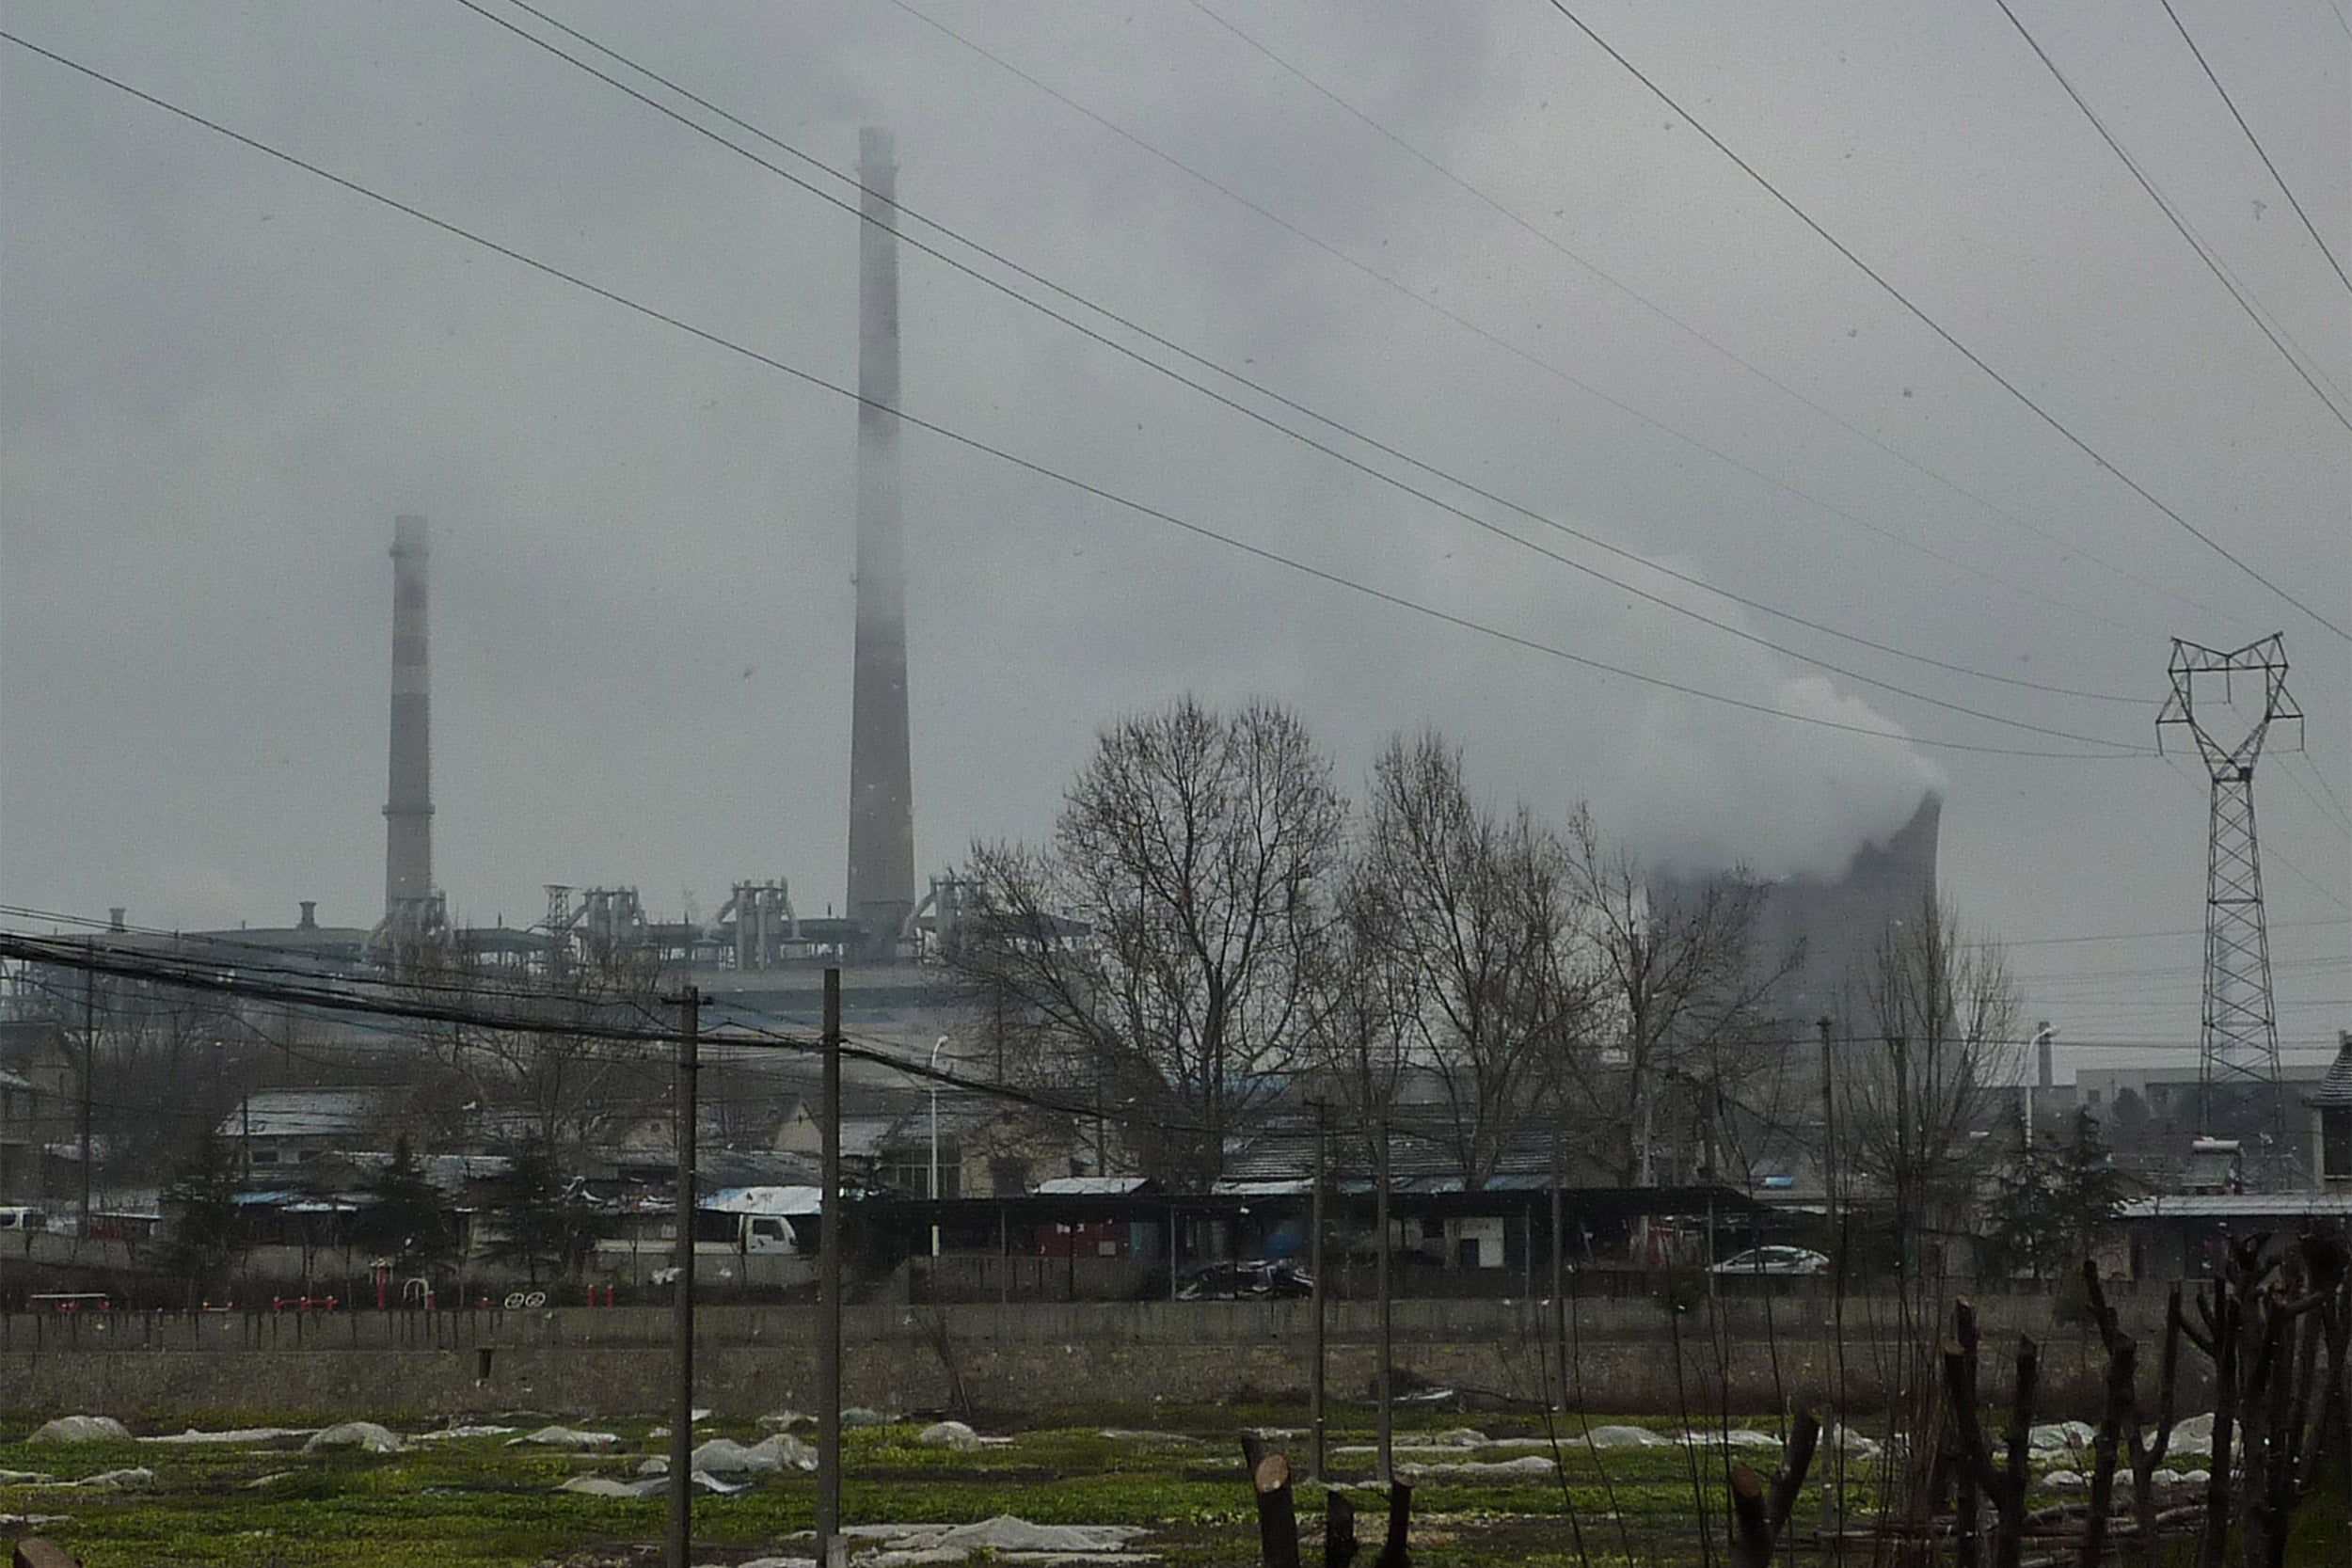 Study shows China can be carbon-negative in an economically competitive way